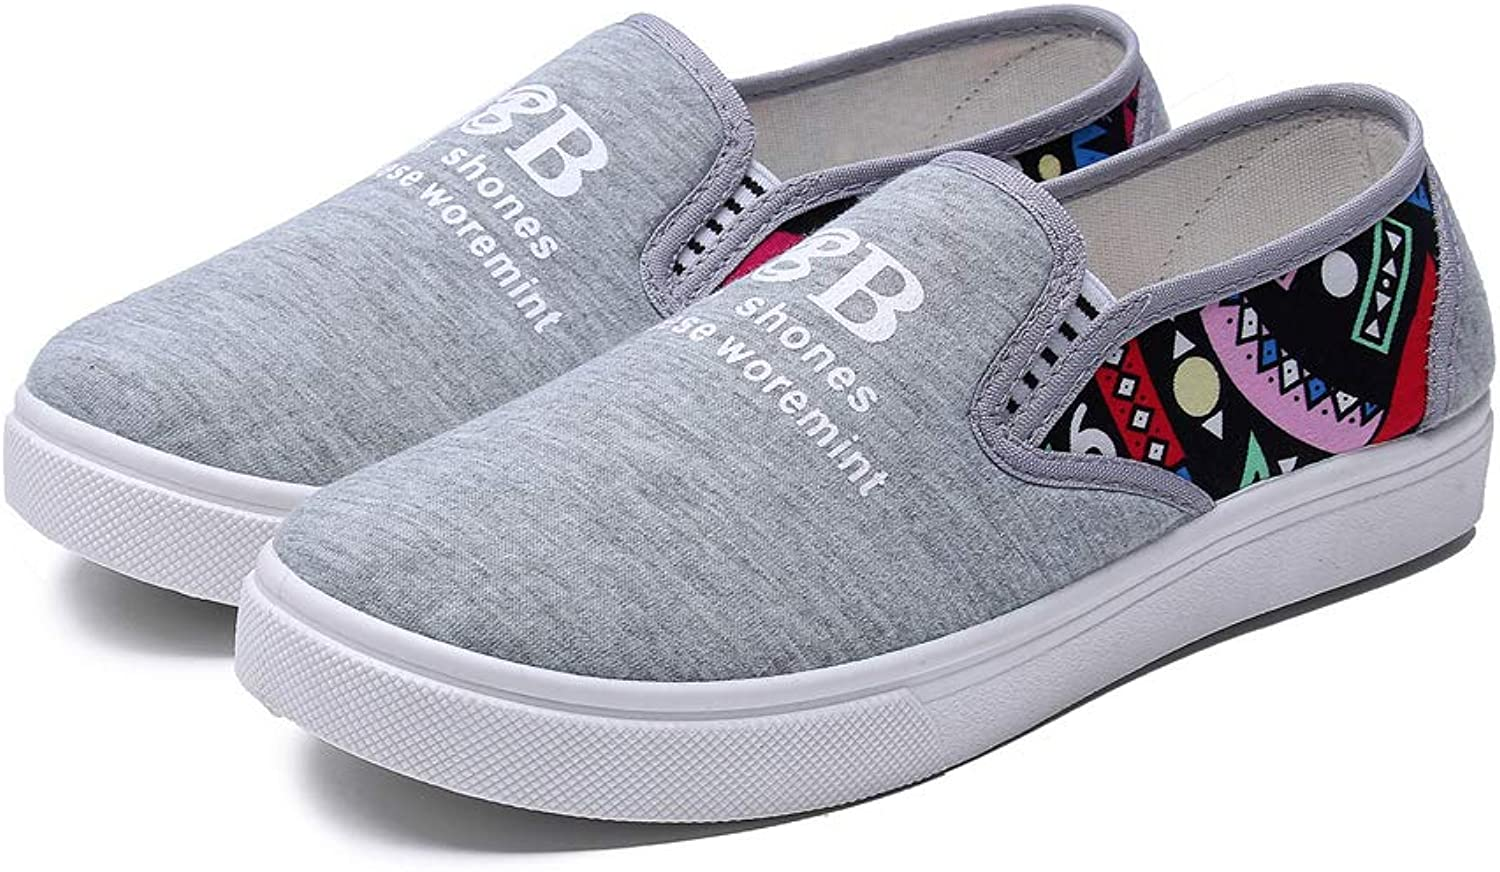 Women's Casual Comfort Slip On Canvas Sneakers Loafers Flats shoes